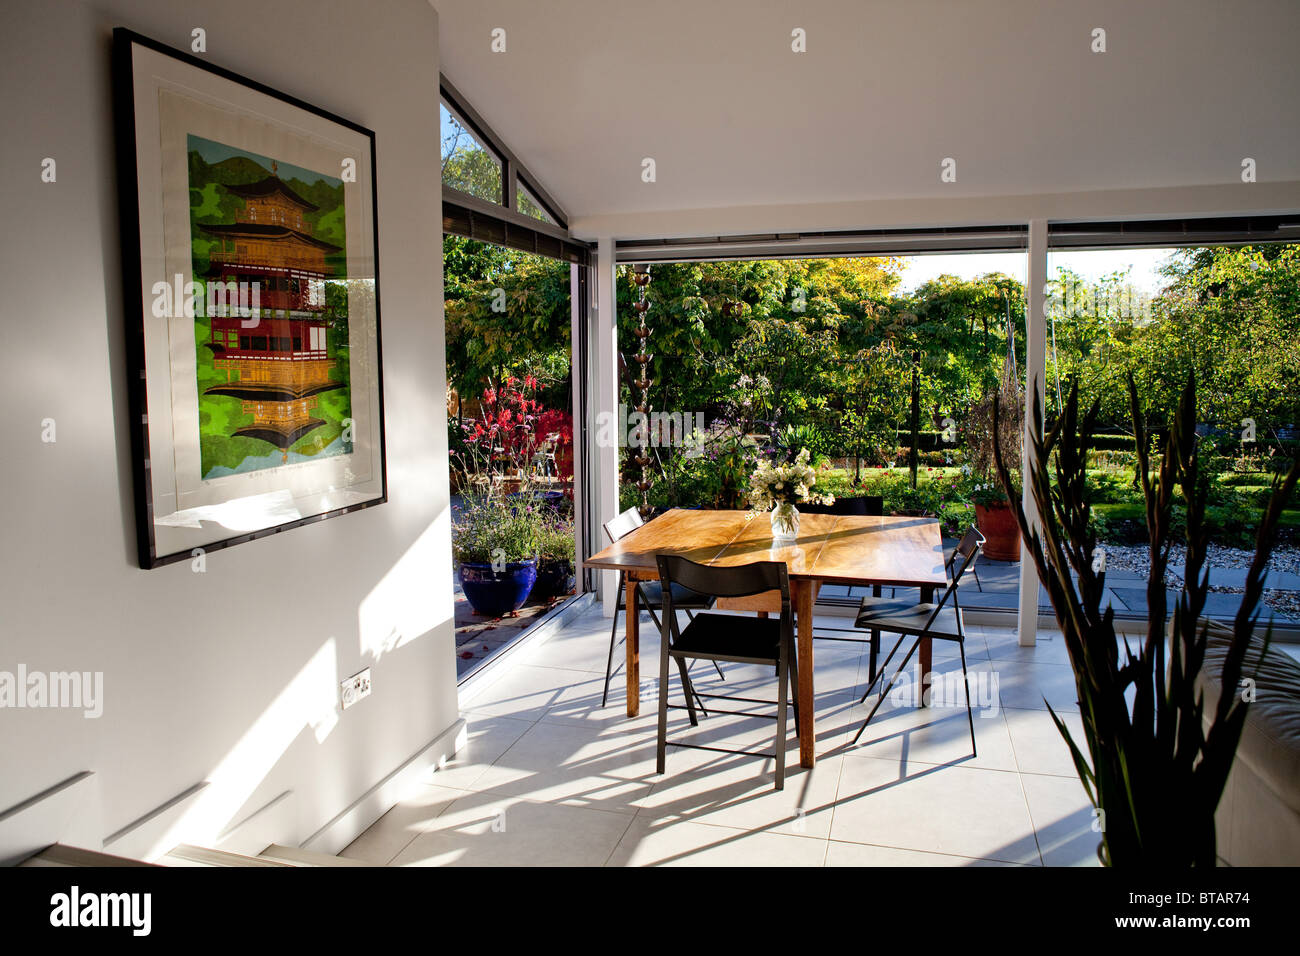 A Dining Room With Doors That Open Onto A Patio And Garden